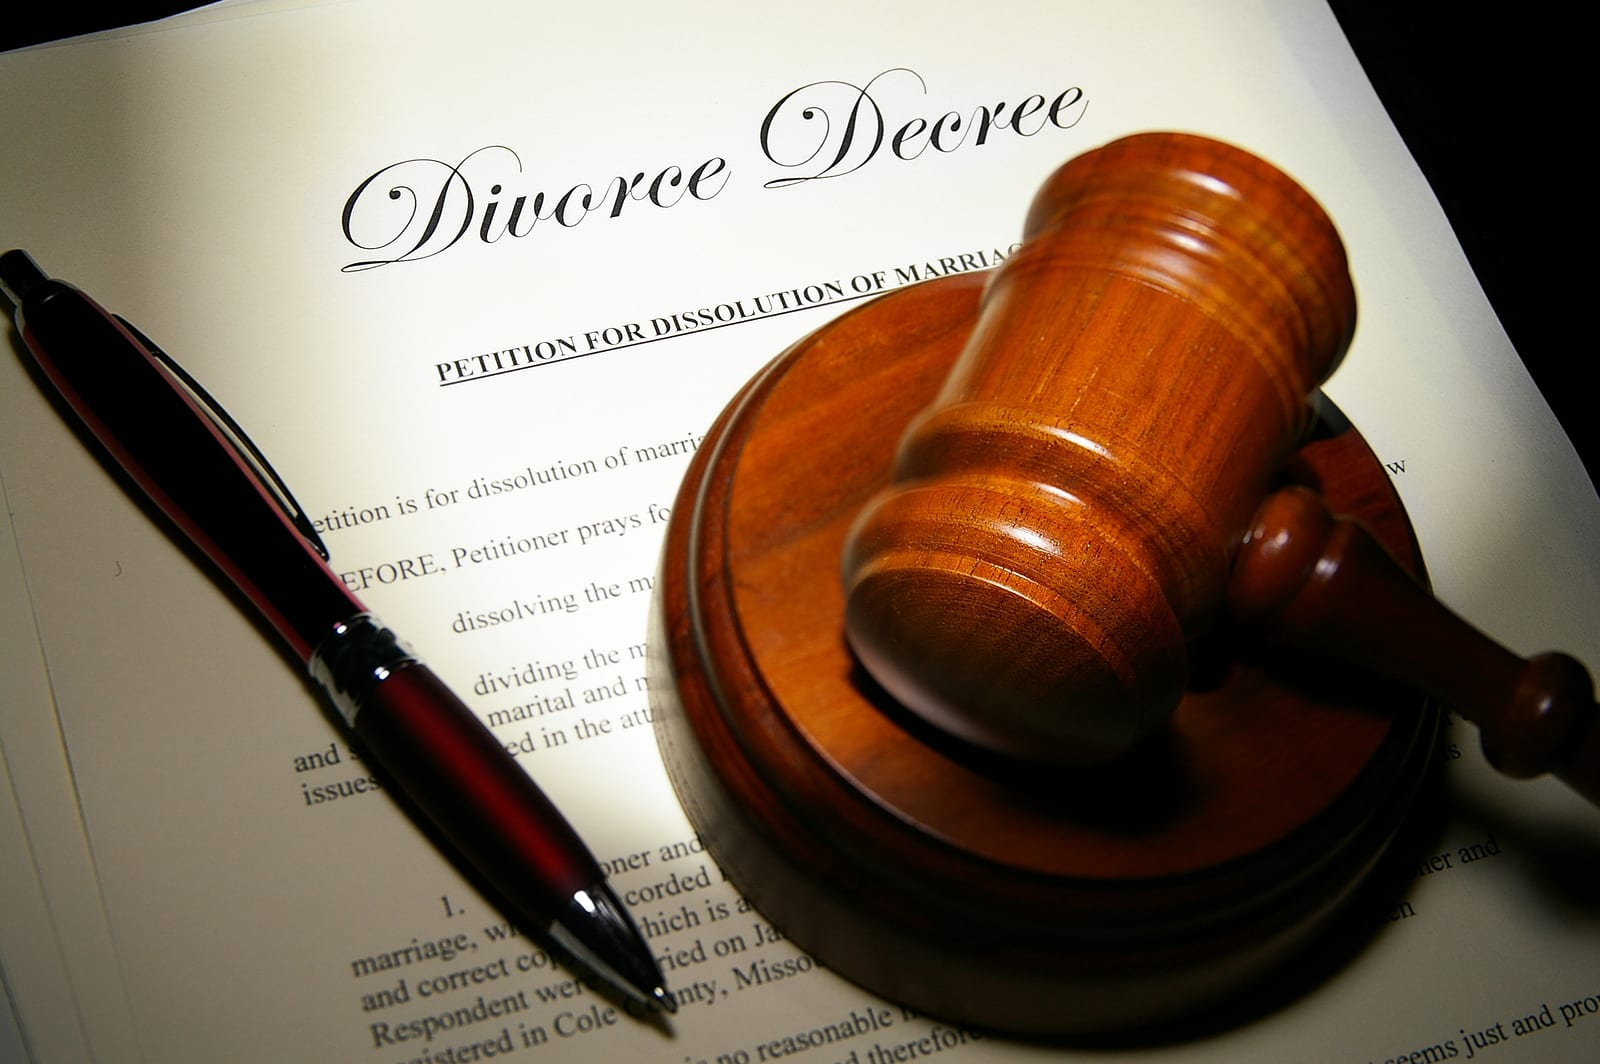 Help! I Do Not Want to Get Divorced!